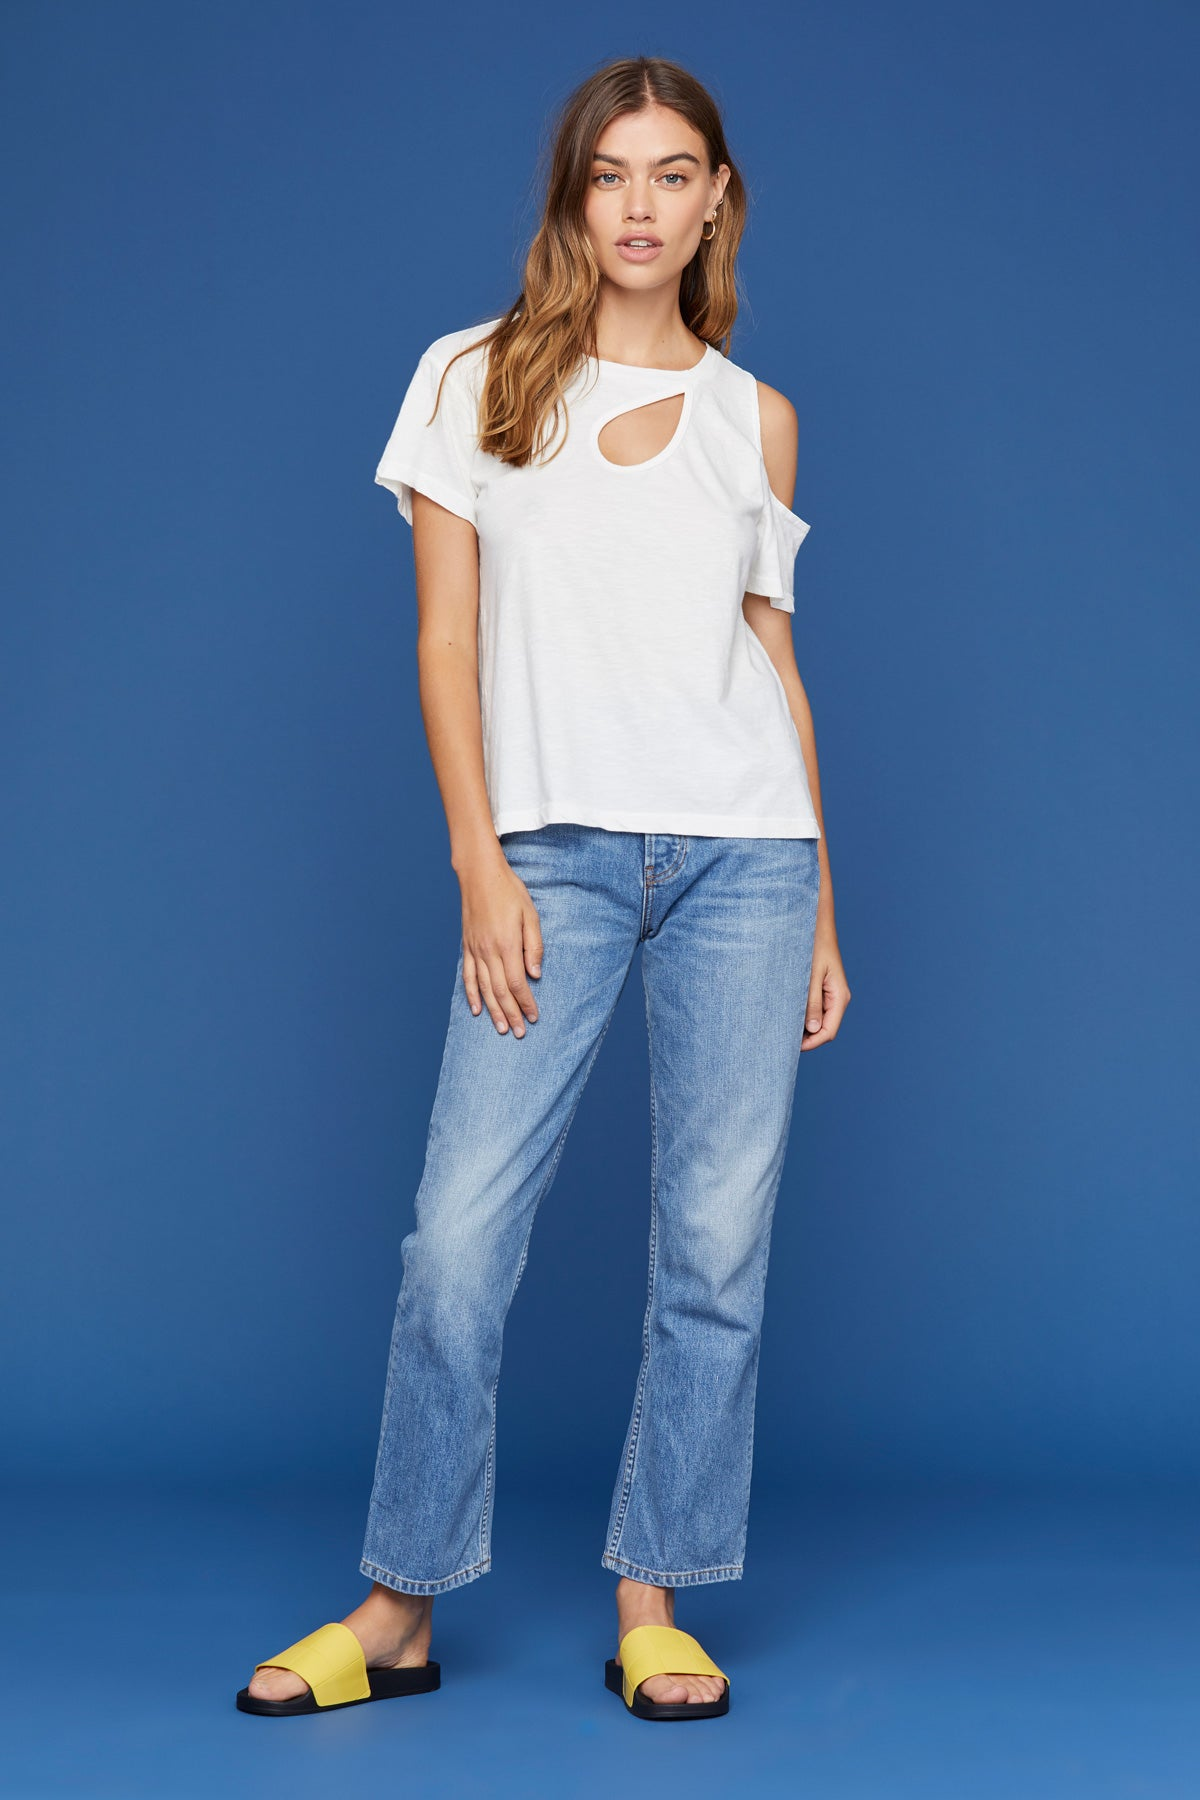 LNA Claire Cutout Tee in Lily White